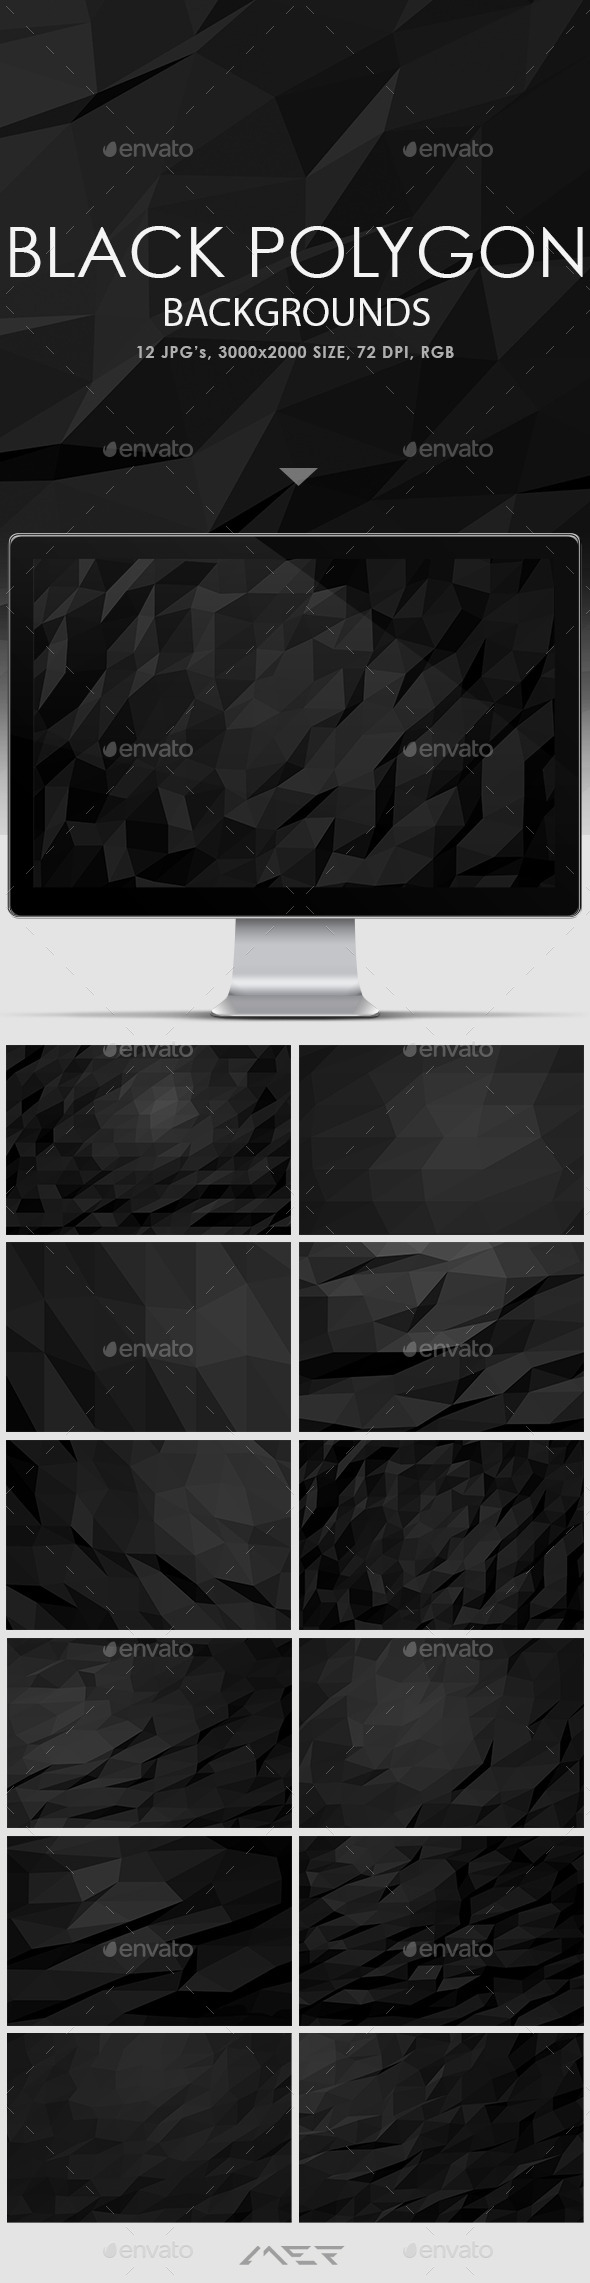 GraphicRiver Black Polygon Backgrounds 10671205